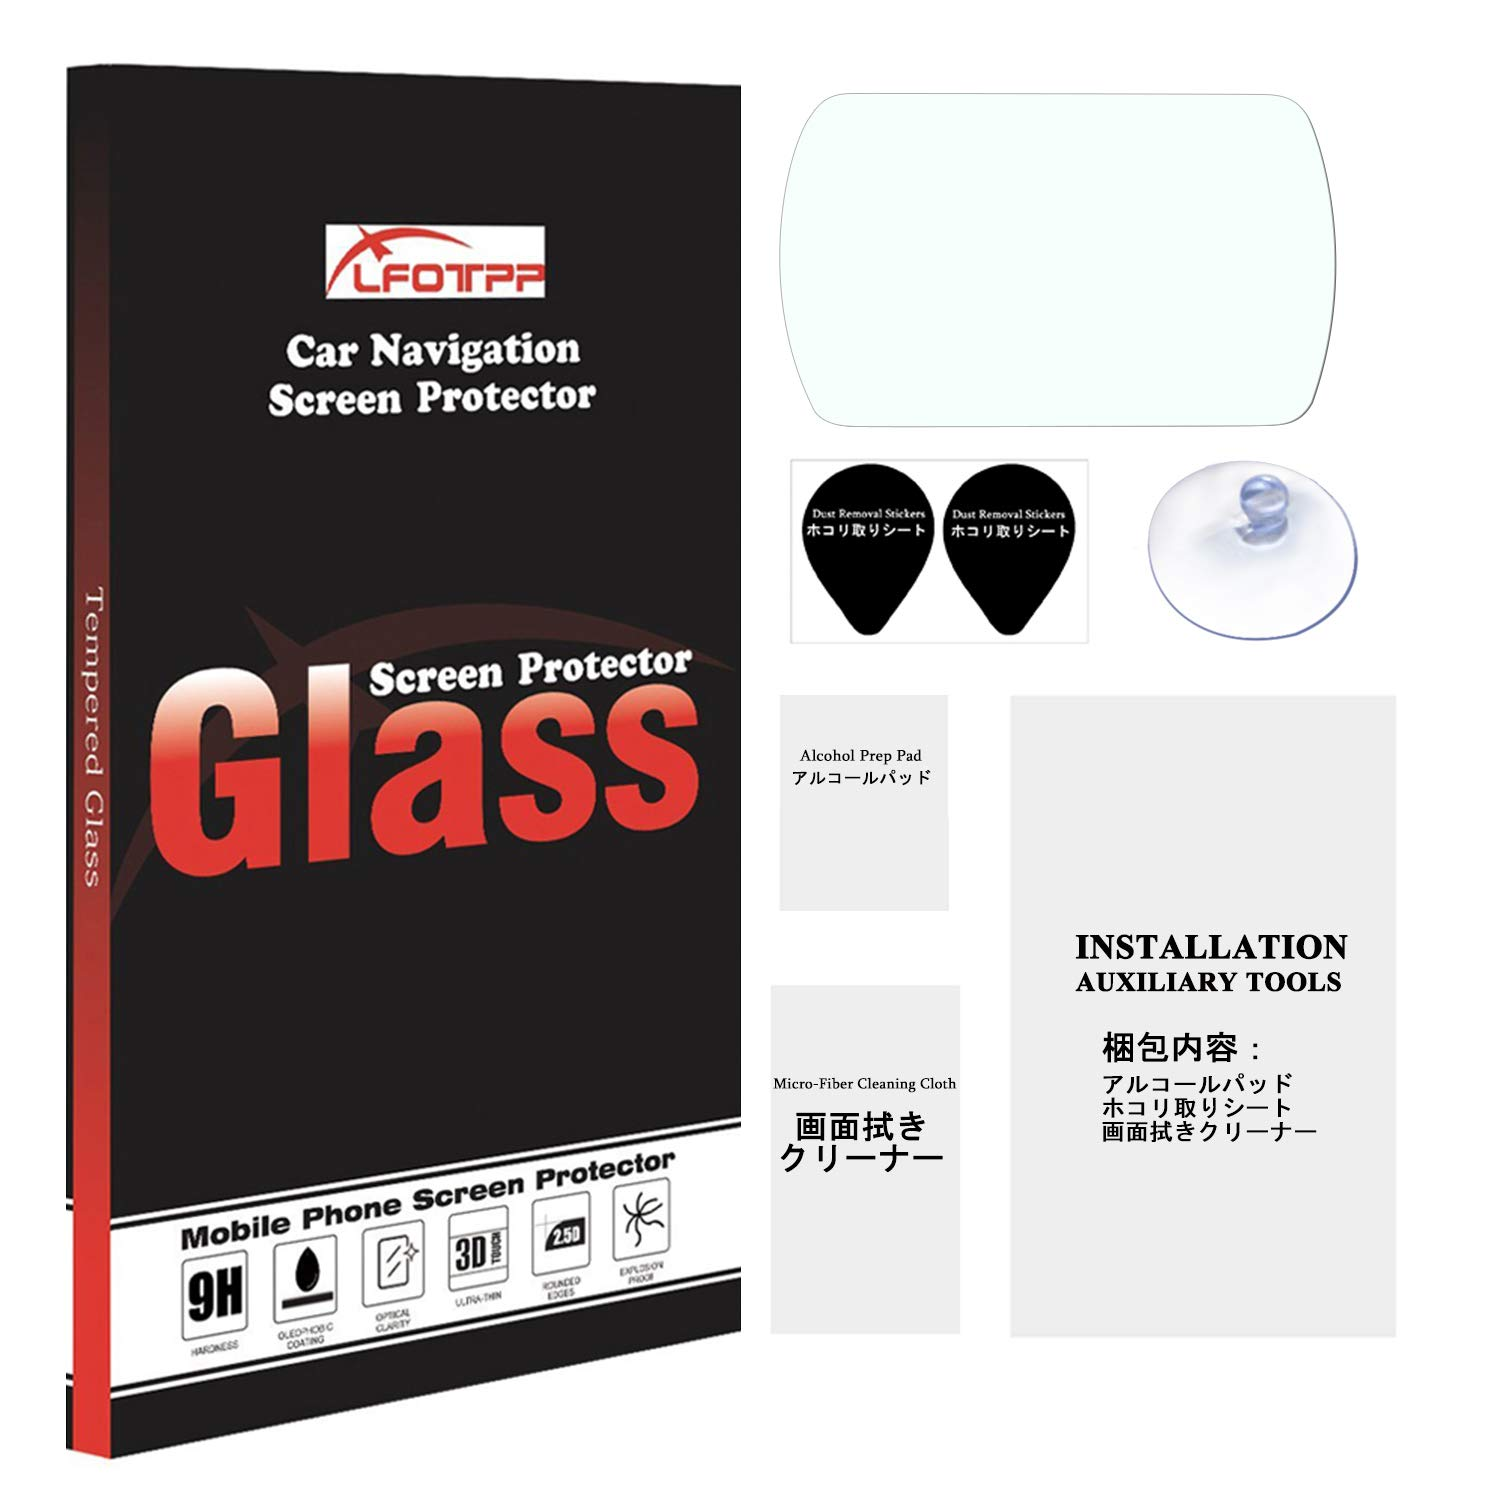 2PCS Glass GPS Screen Protector for 2018 Edge Explore LFOTPP 9H Tempered Glass Guard Shield Scratch-Resistant Ultra HD Extreme Clarity LiFan